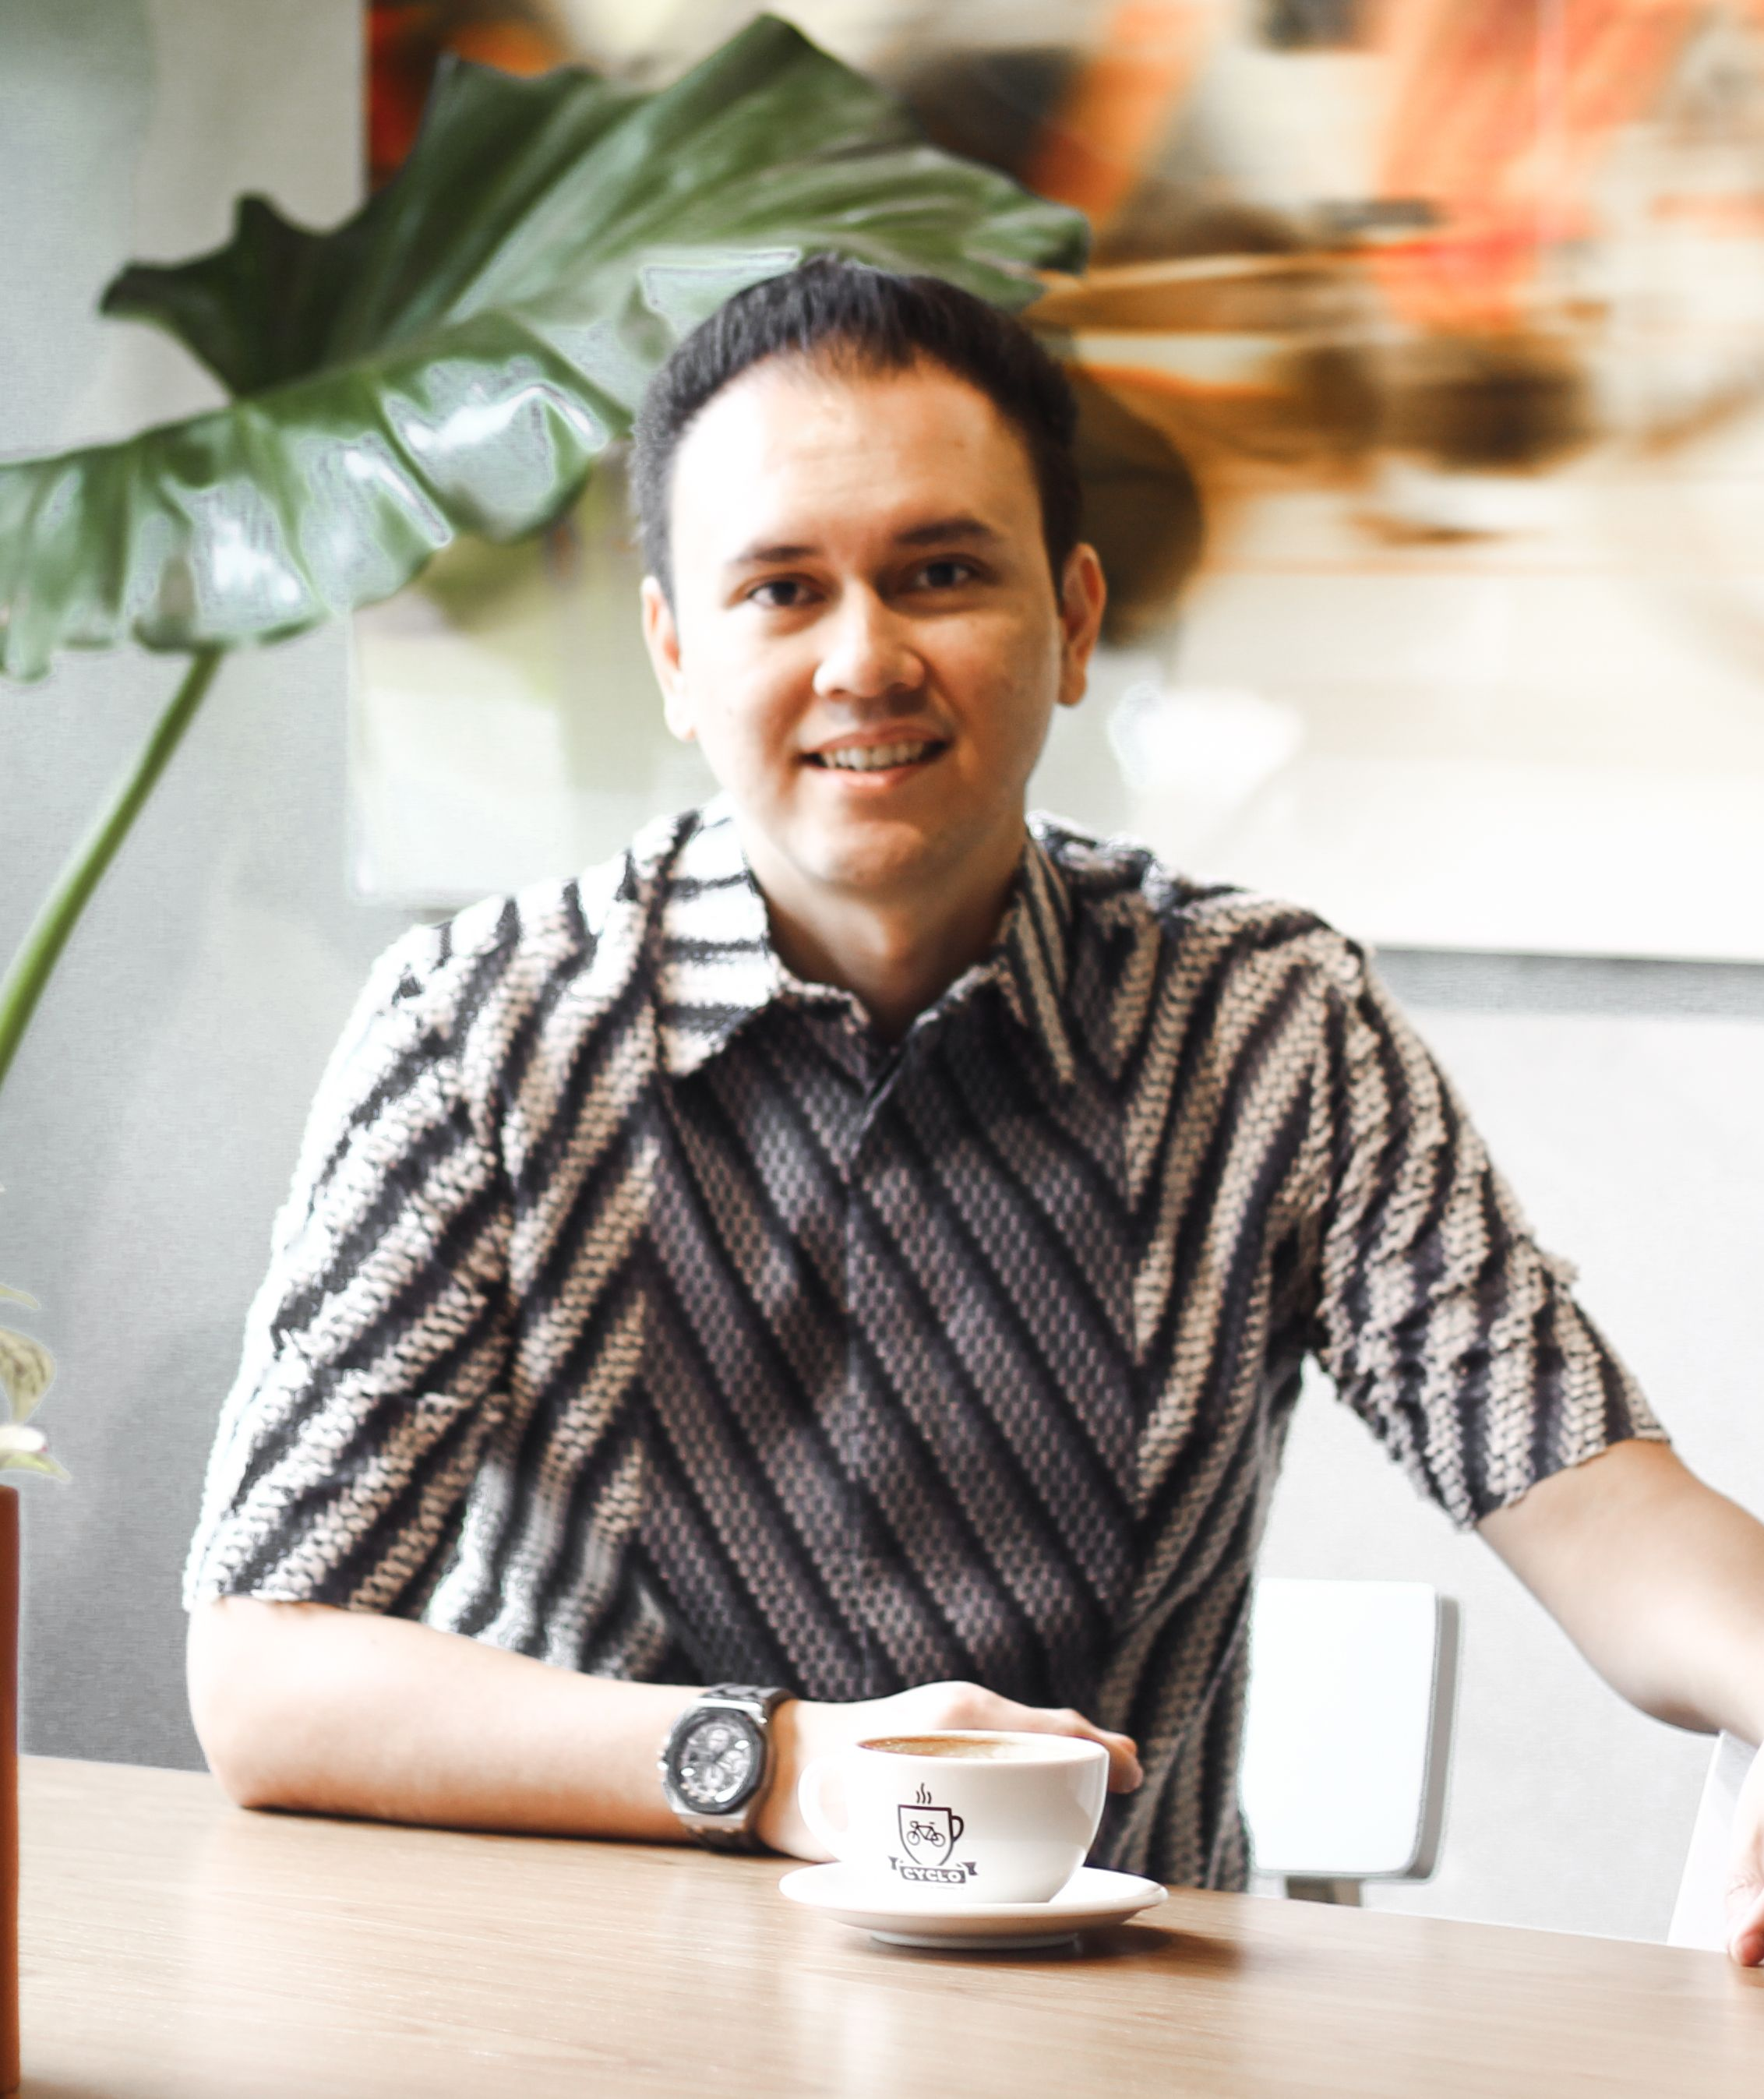 Hanin is the founder & owner of Cyclo Coffee and Apparel who was helped by Moka Capital to grow his coffee & clothing business